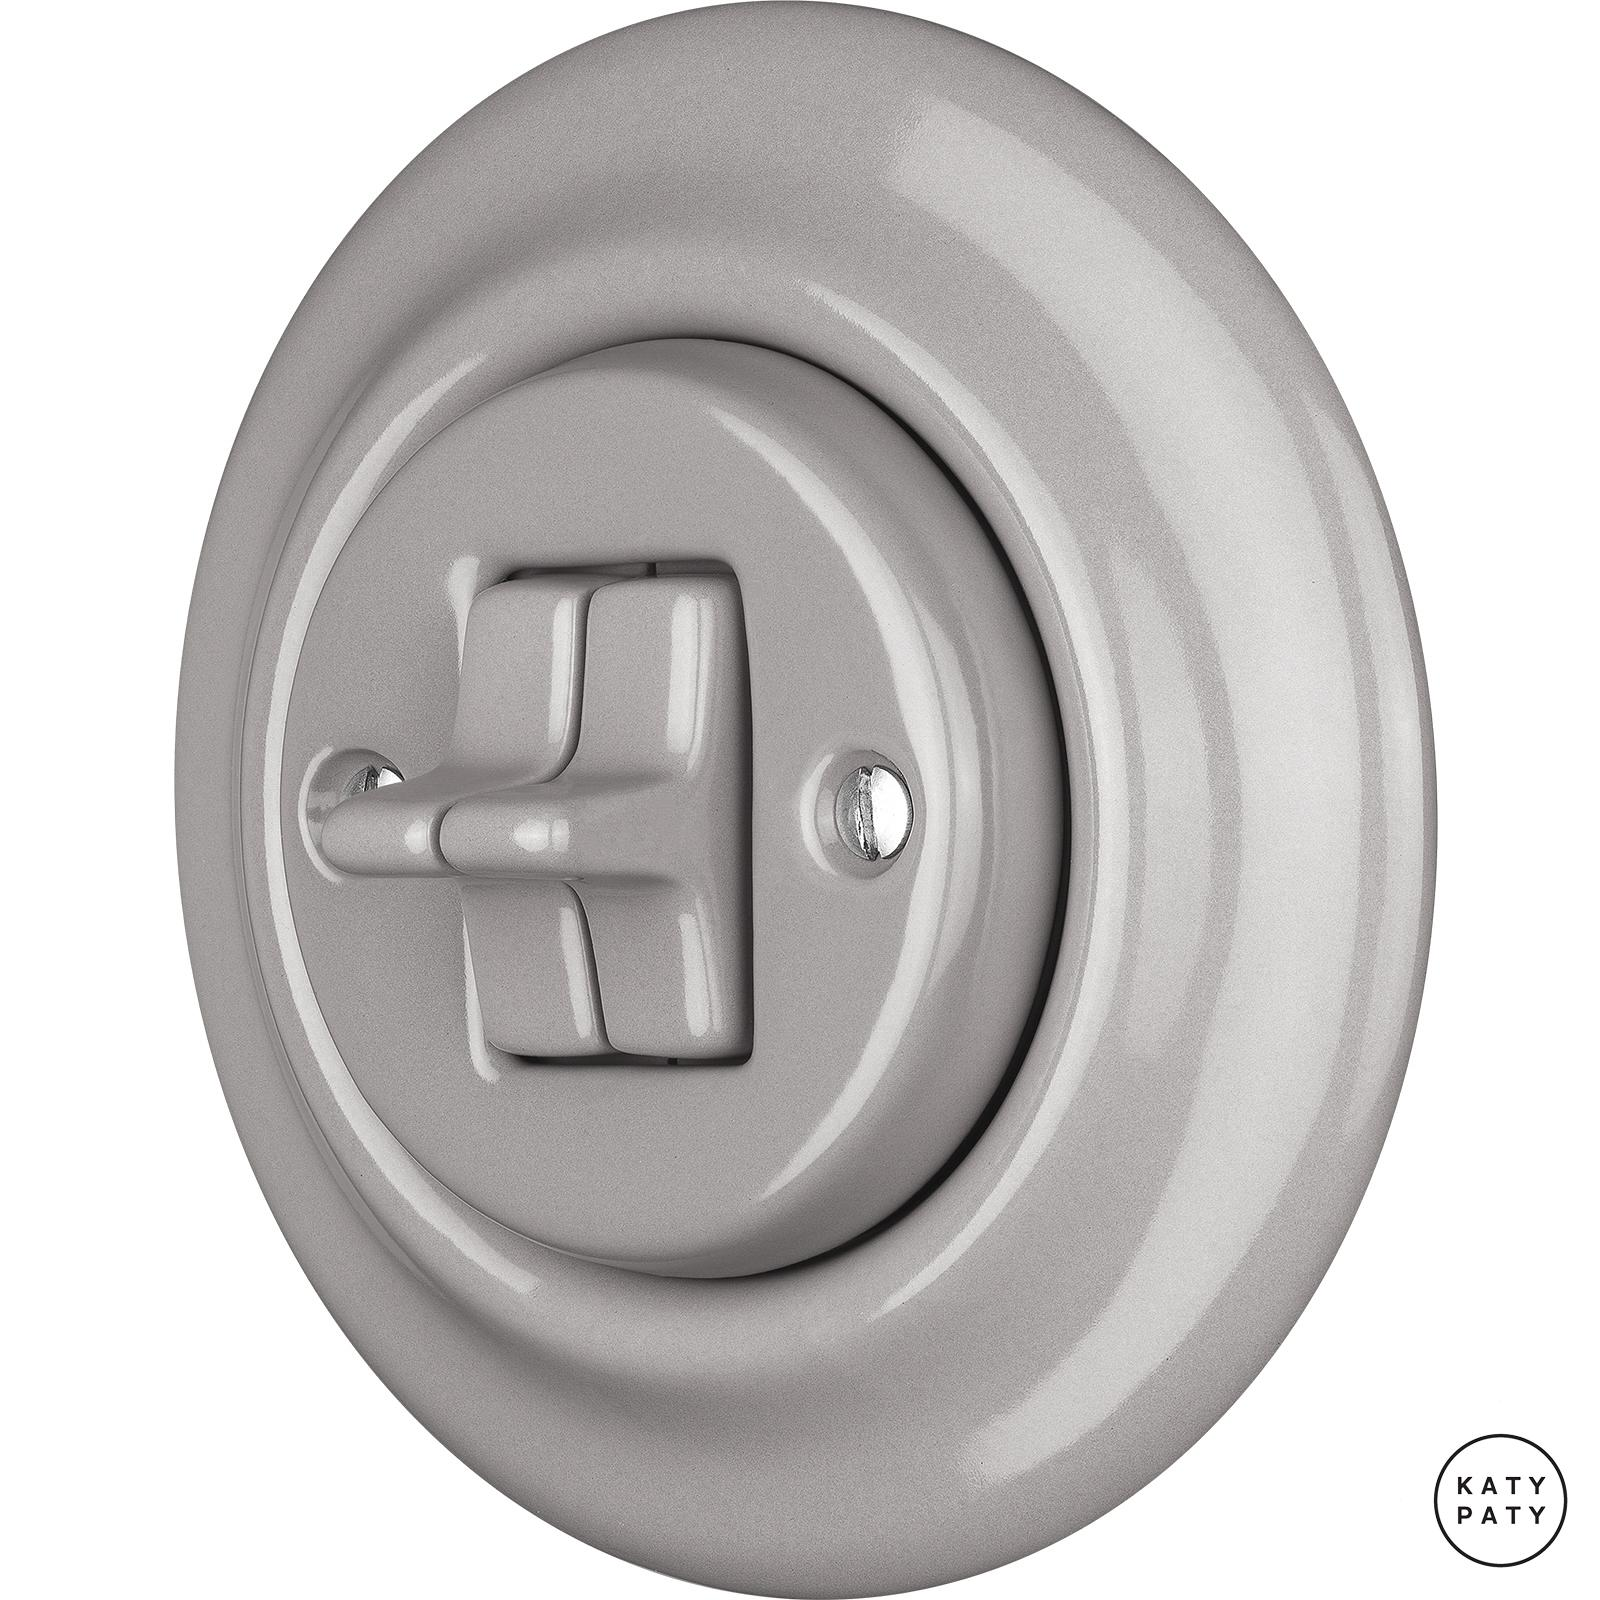 Porcelain toggle switches - a double gang ()  - LUCIDUM | Katy Paty